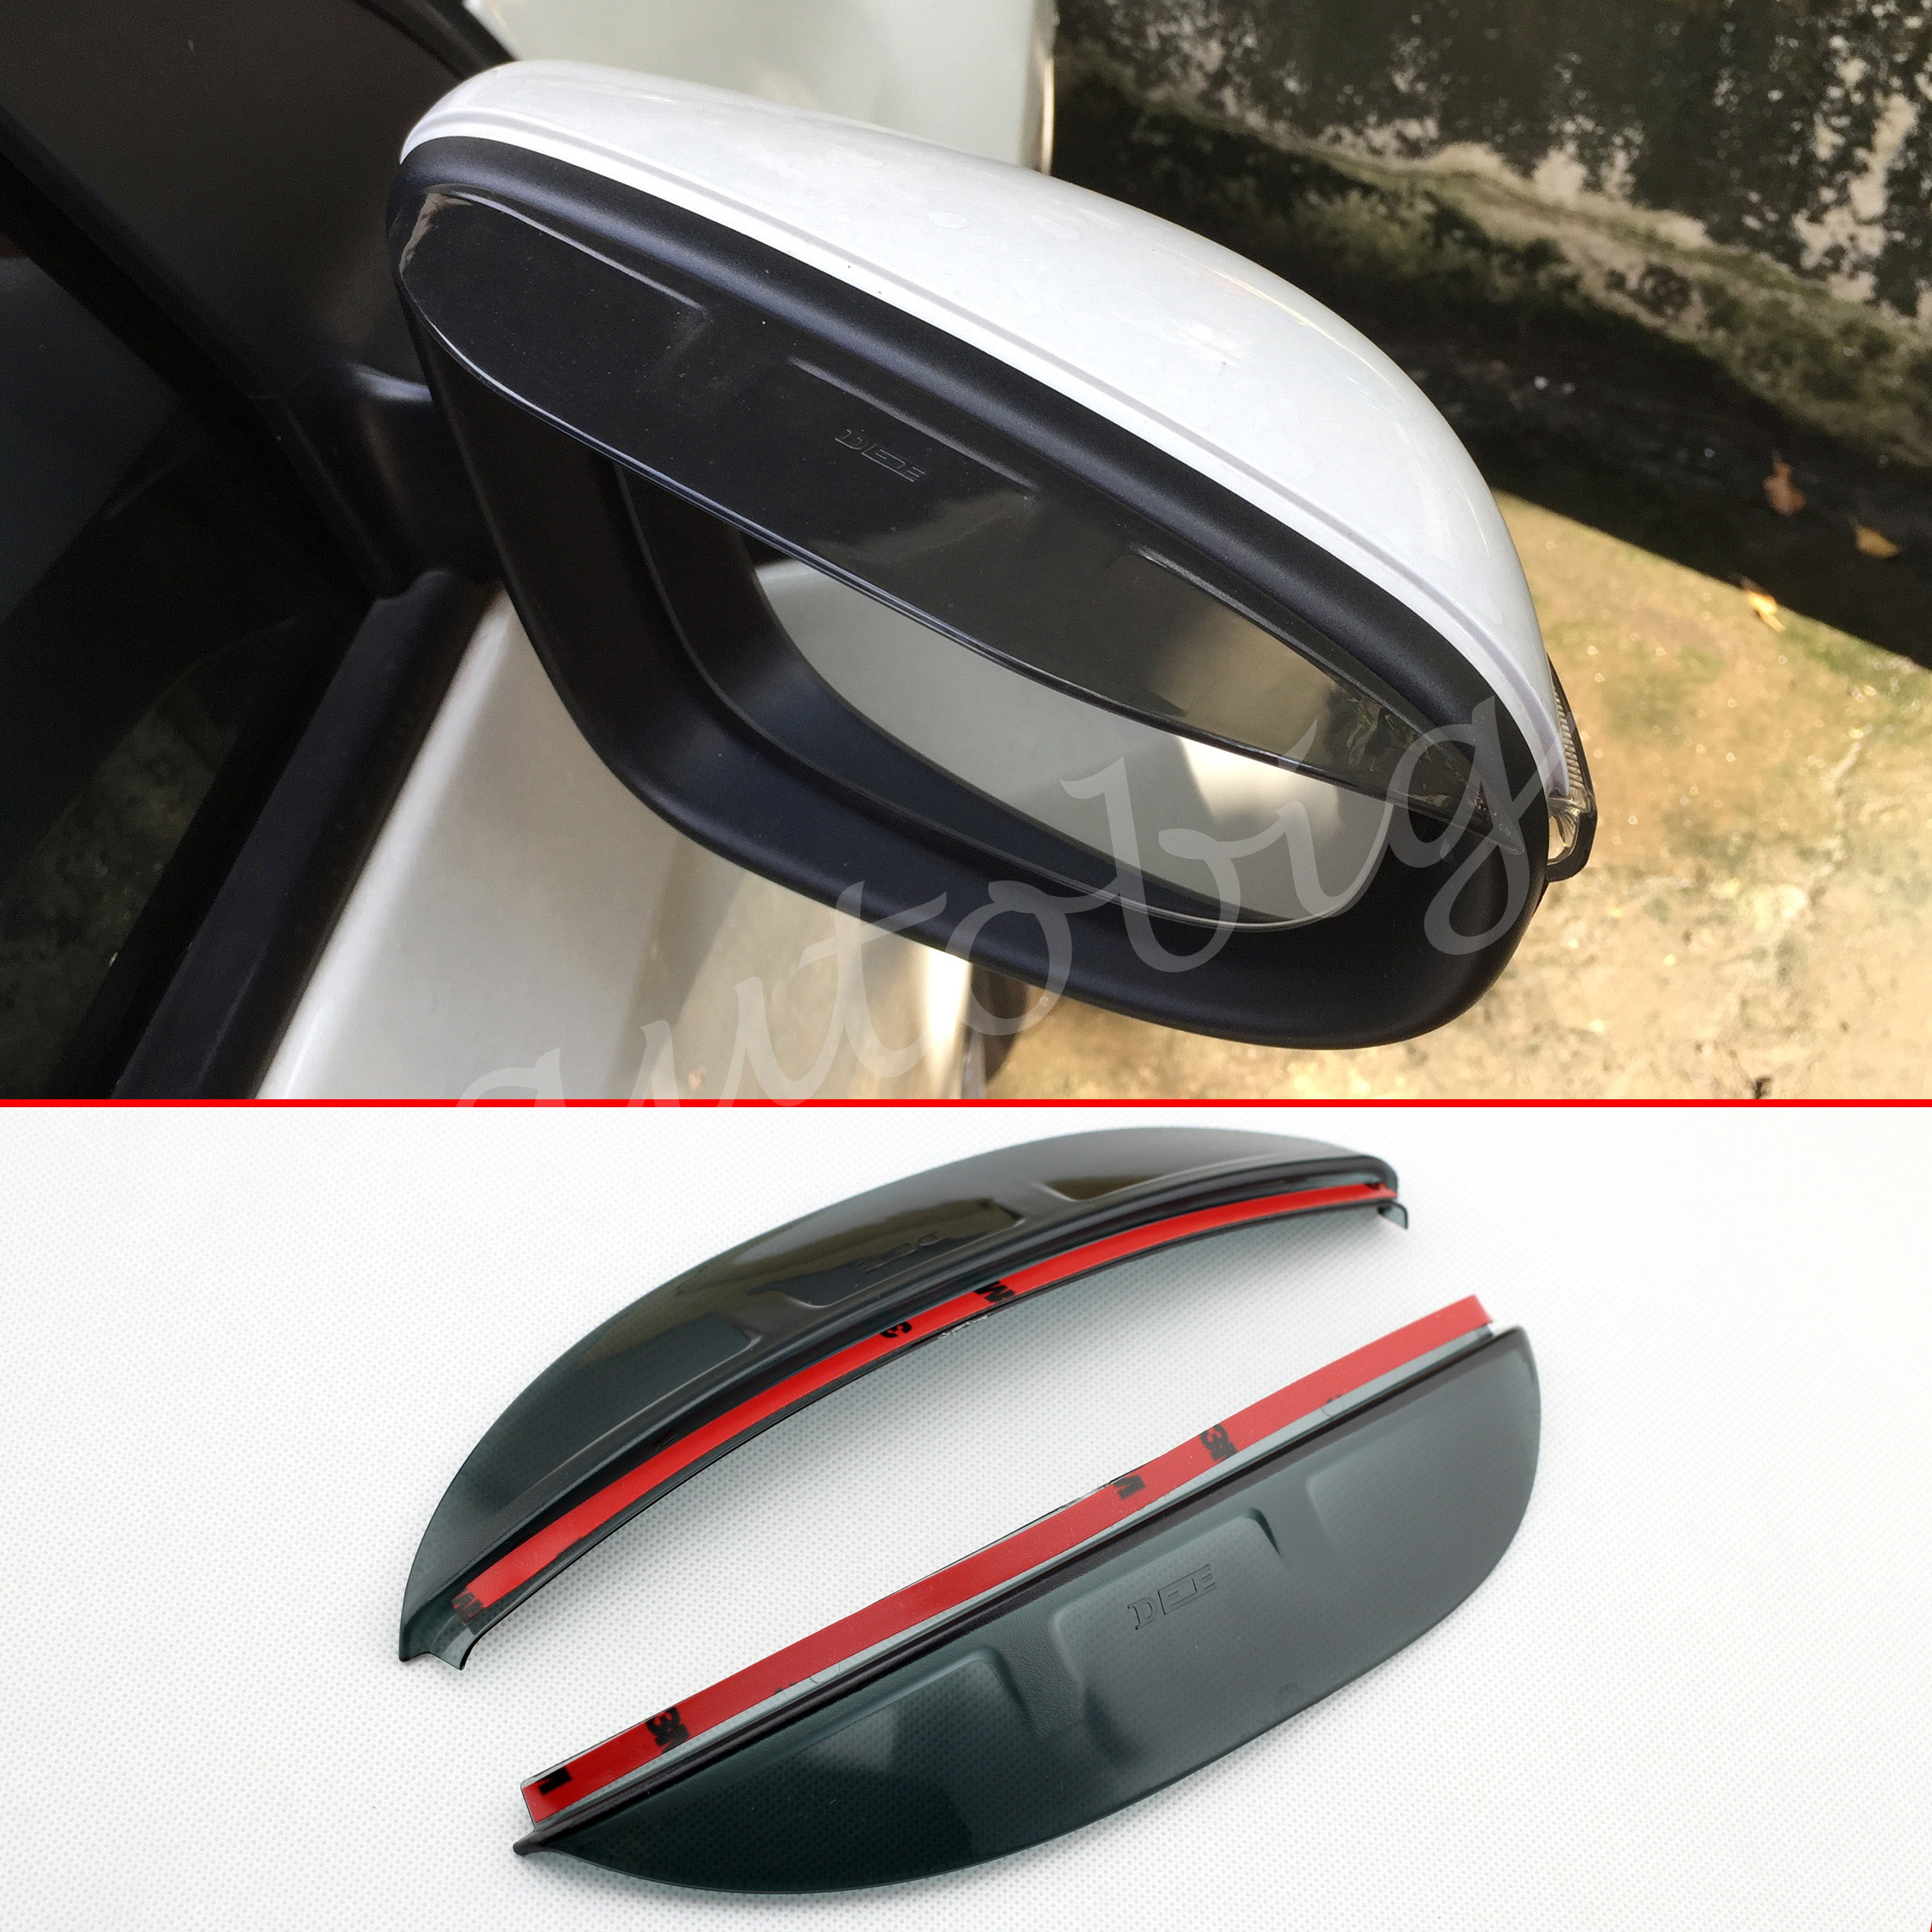 Rearview side mirror rain shield visor protective guard for ford escape kuga 2013 2014 2015 2016